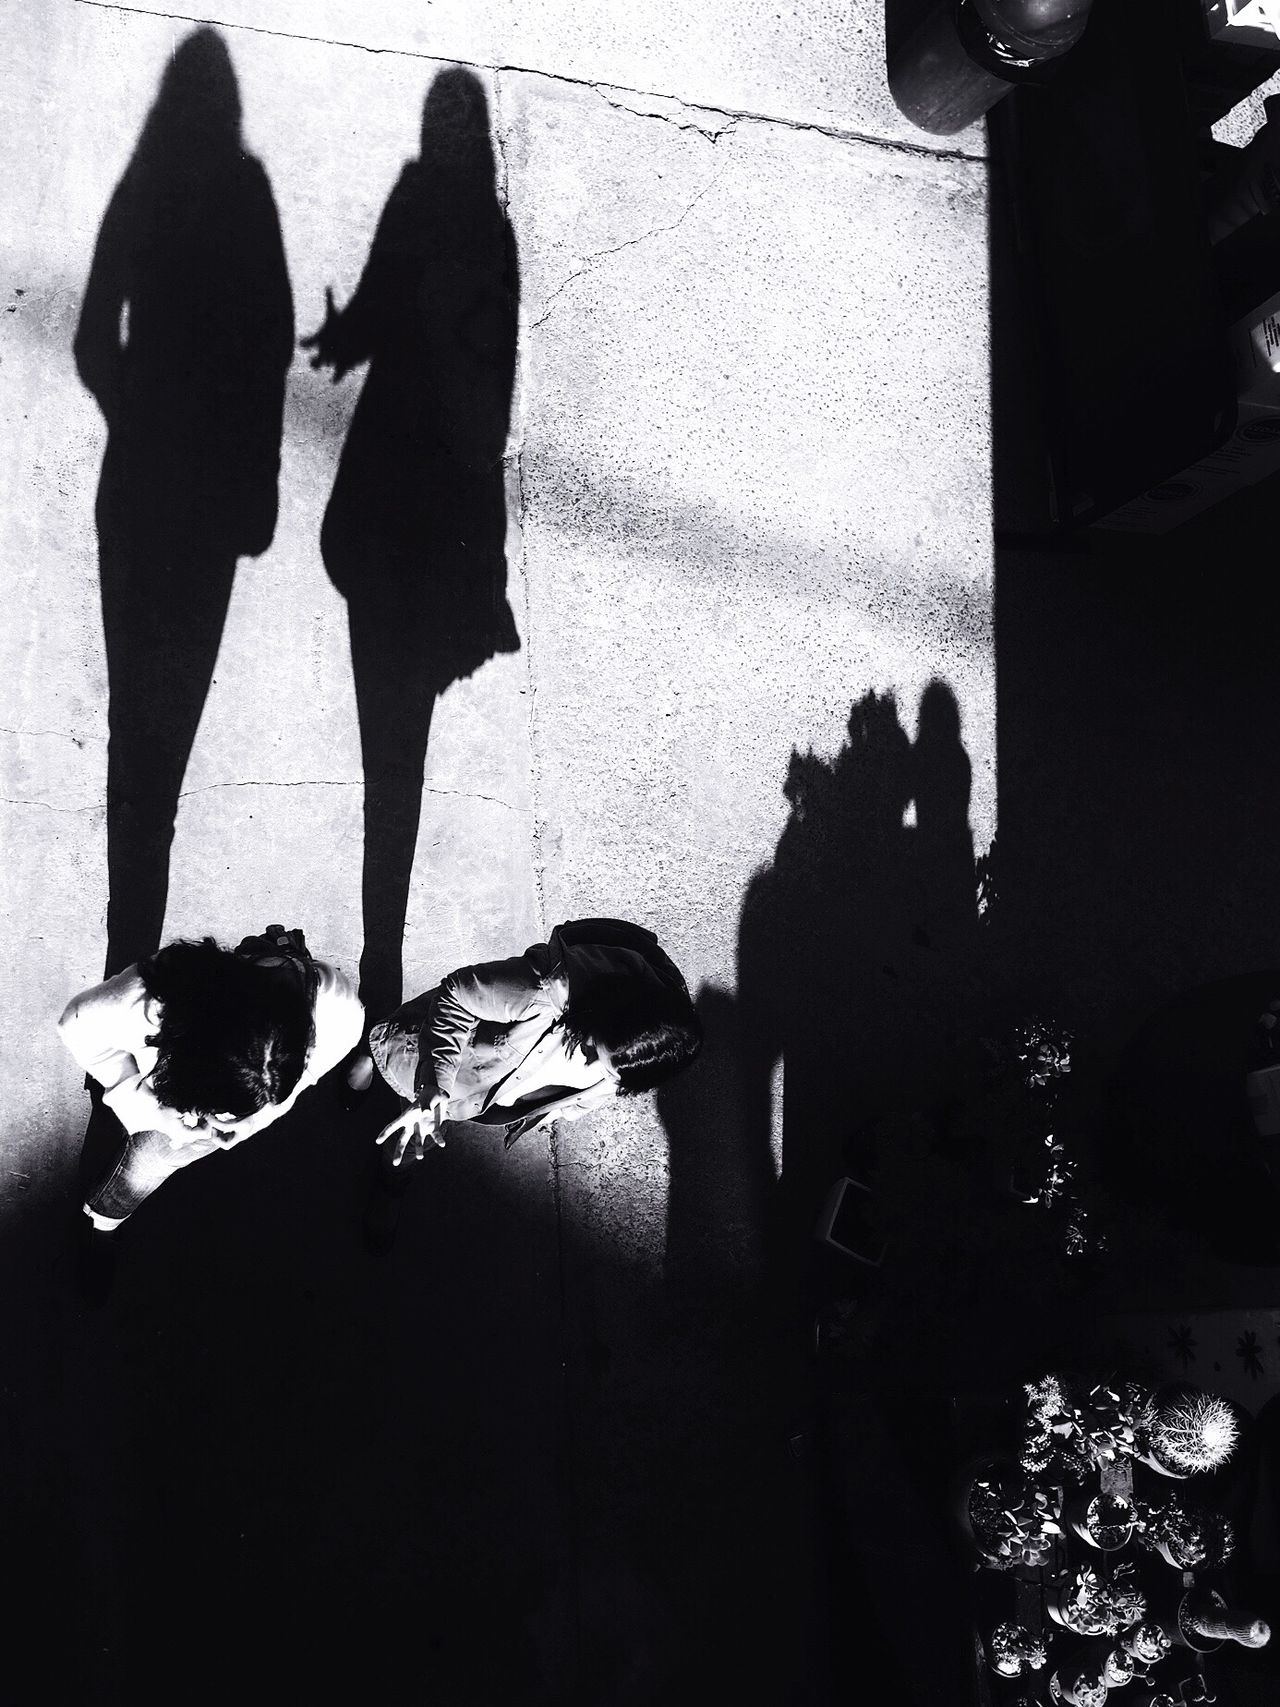 No fear // Melbourne Real People Shadow Men Togetherness High Angle View Women Two People Lifestyles Full Length Sunlight Day Outdoors Low Section Friendship People Streetphotography Blackandwhite Monochrome Shadows & Lights The Street Photographer - 2017 EyeEm Awards